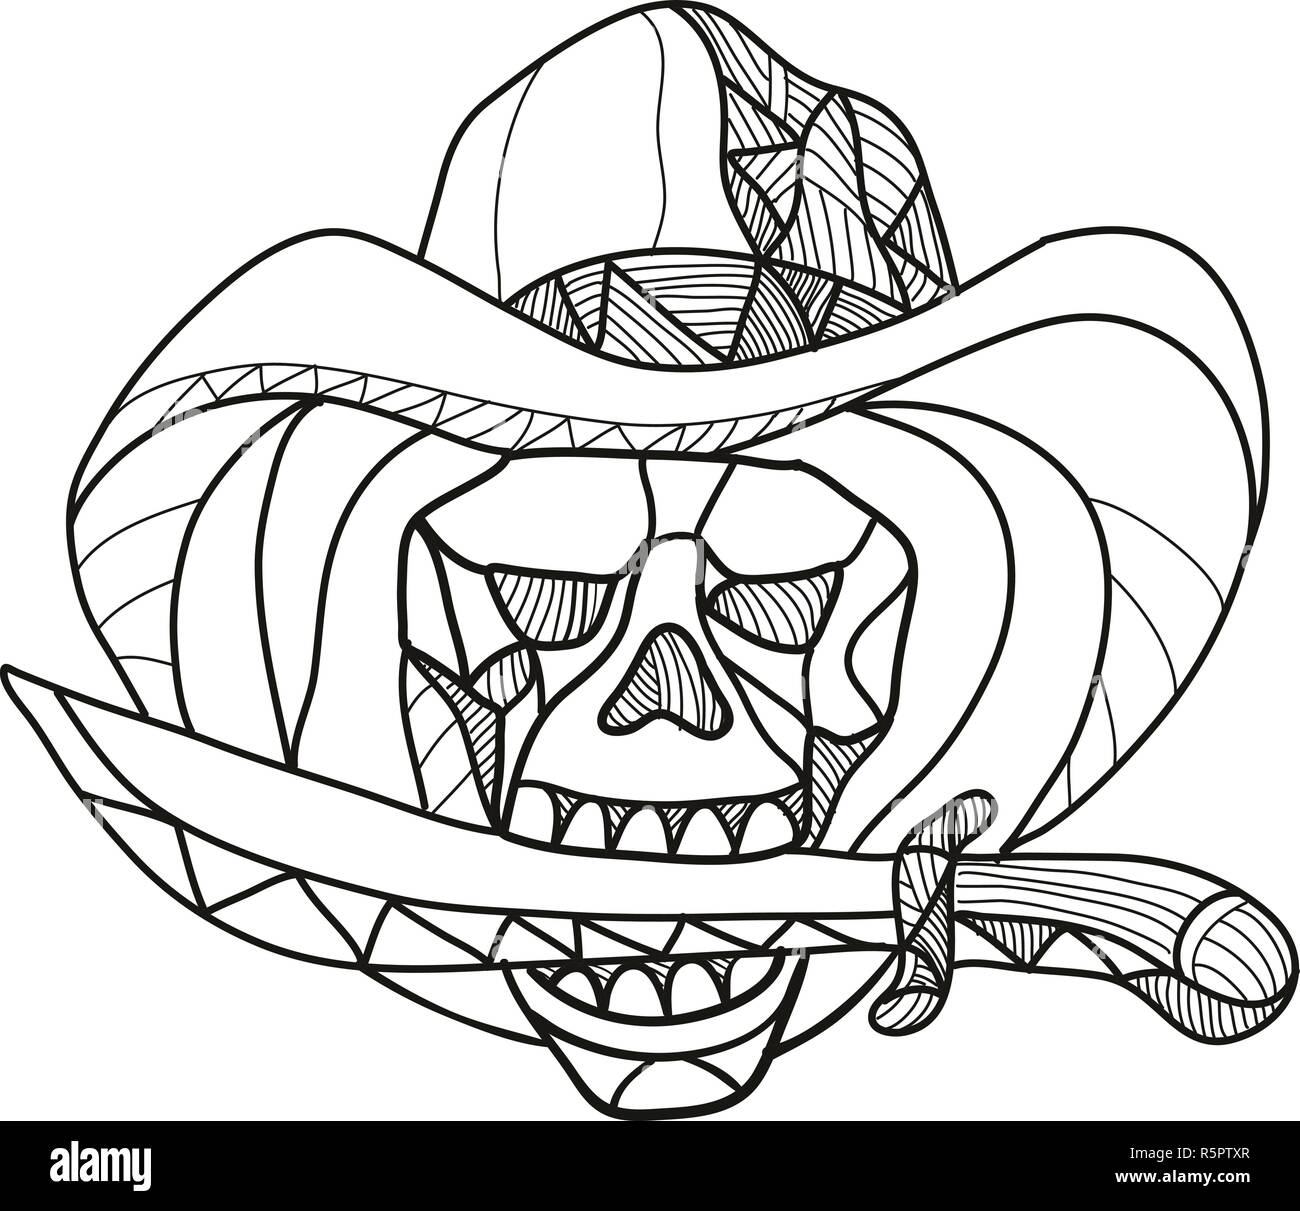 Mosaic low polygon style illustration of a cowboy pirate skull wearing a hat biting a dagger, knife or sword viewed from front on isolated white backg - Stock Vector